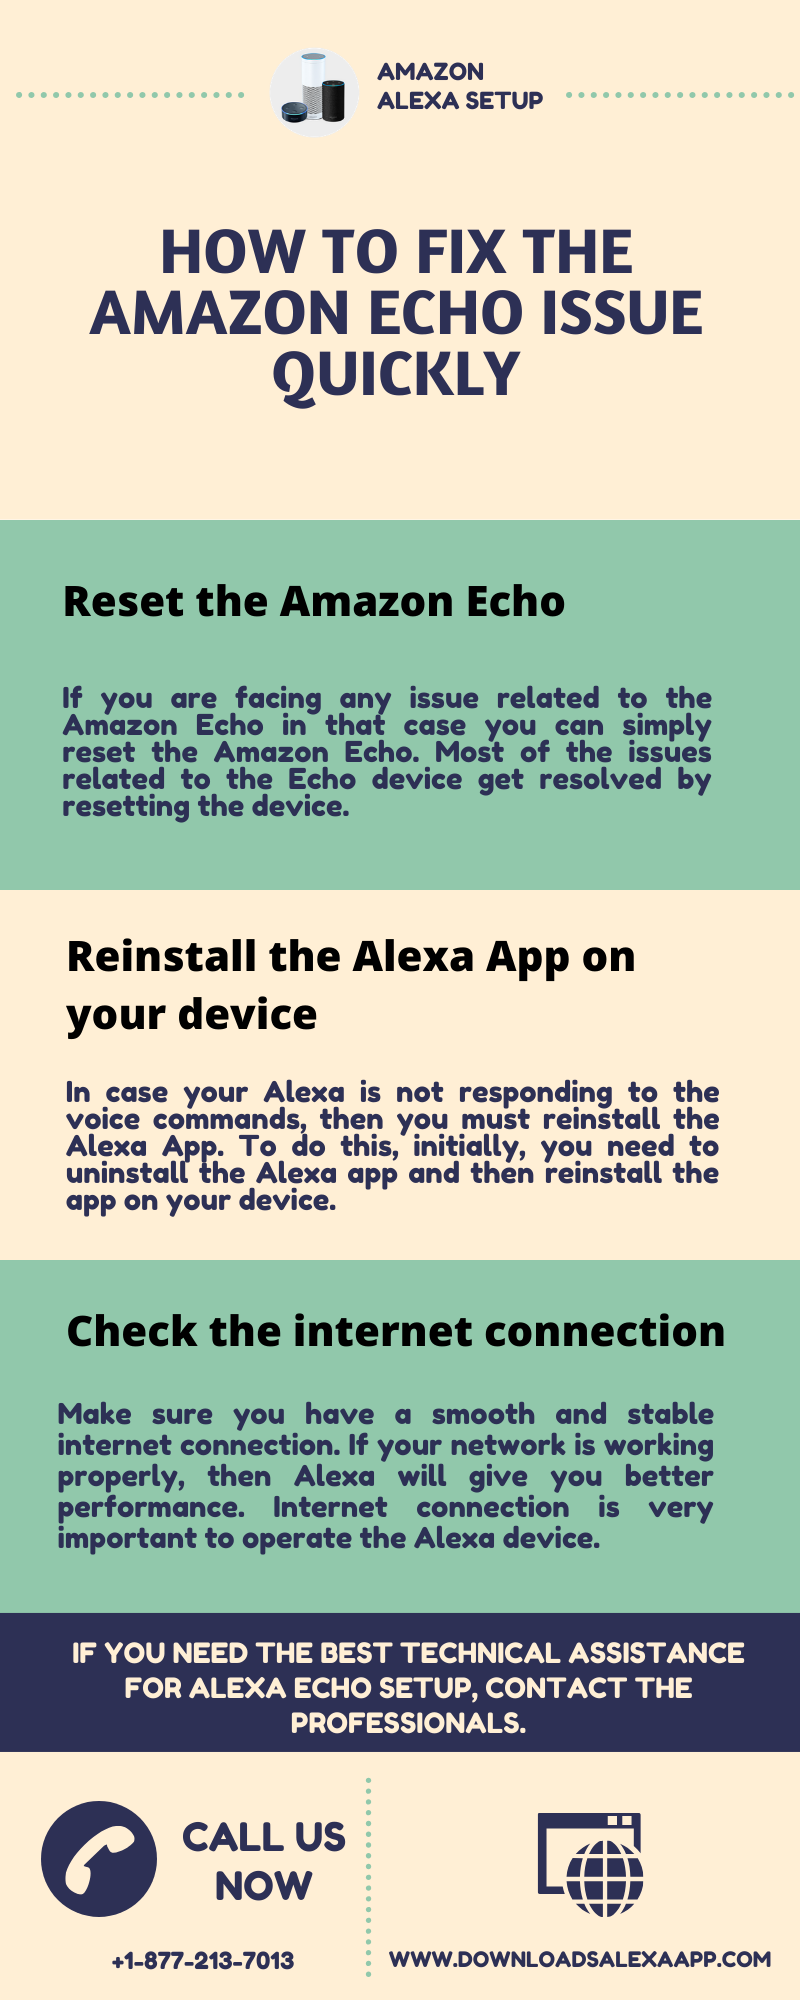 Amazon Alexa Echo Setup Windows 10 Amazon Alexa Alexa Echo Alexa Setup